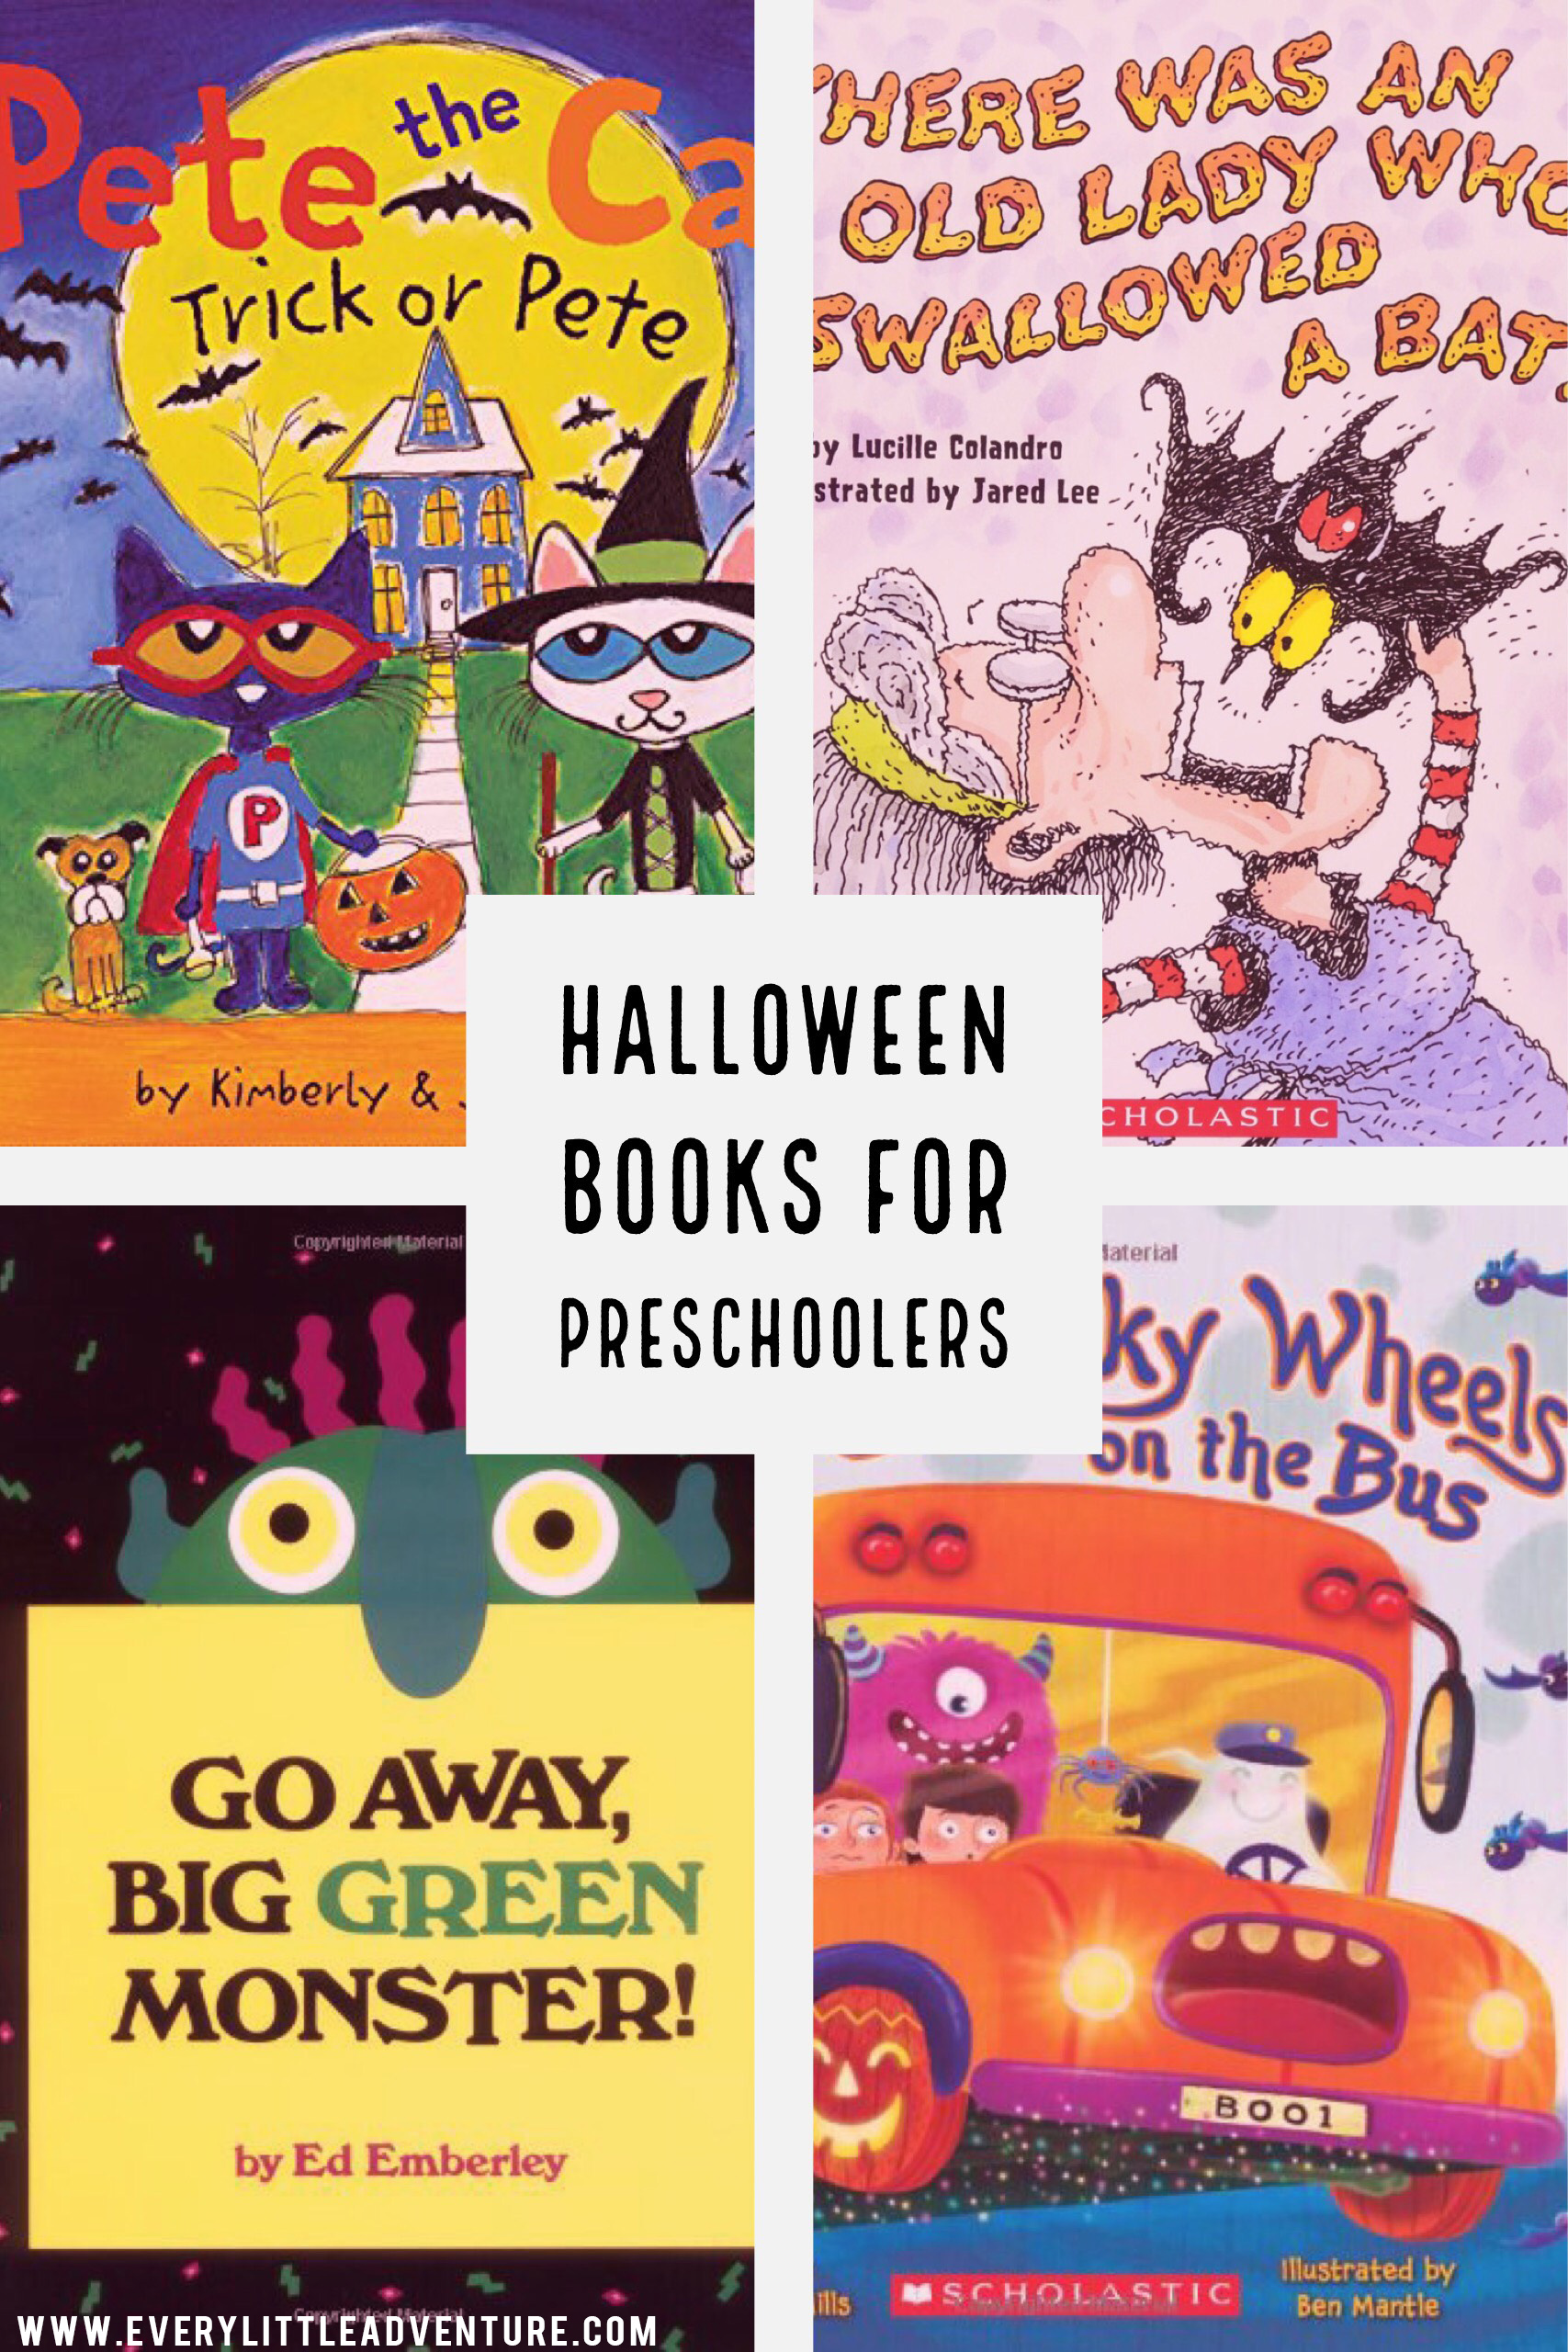 Halloween Books for Preschool